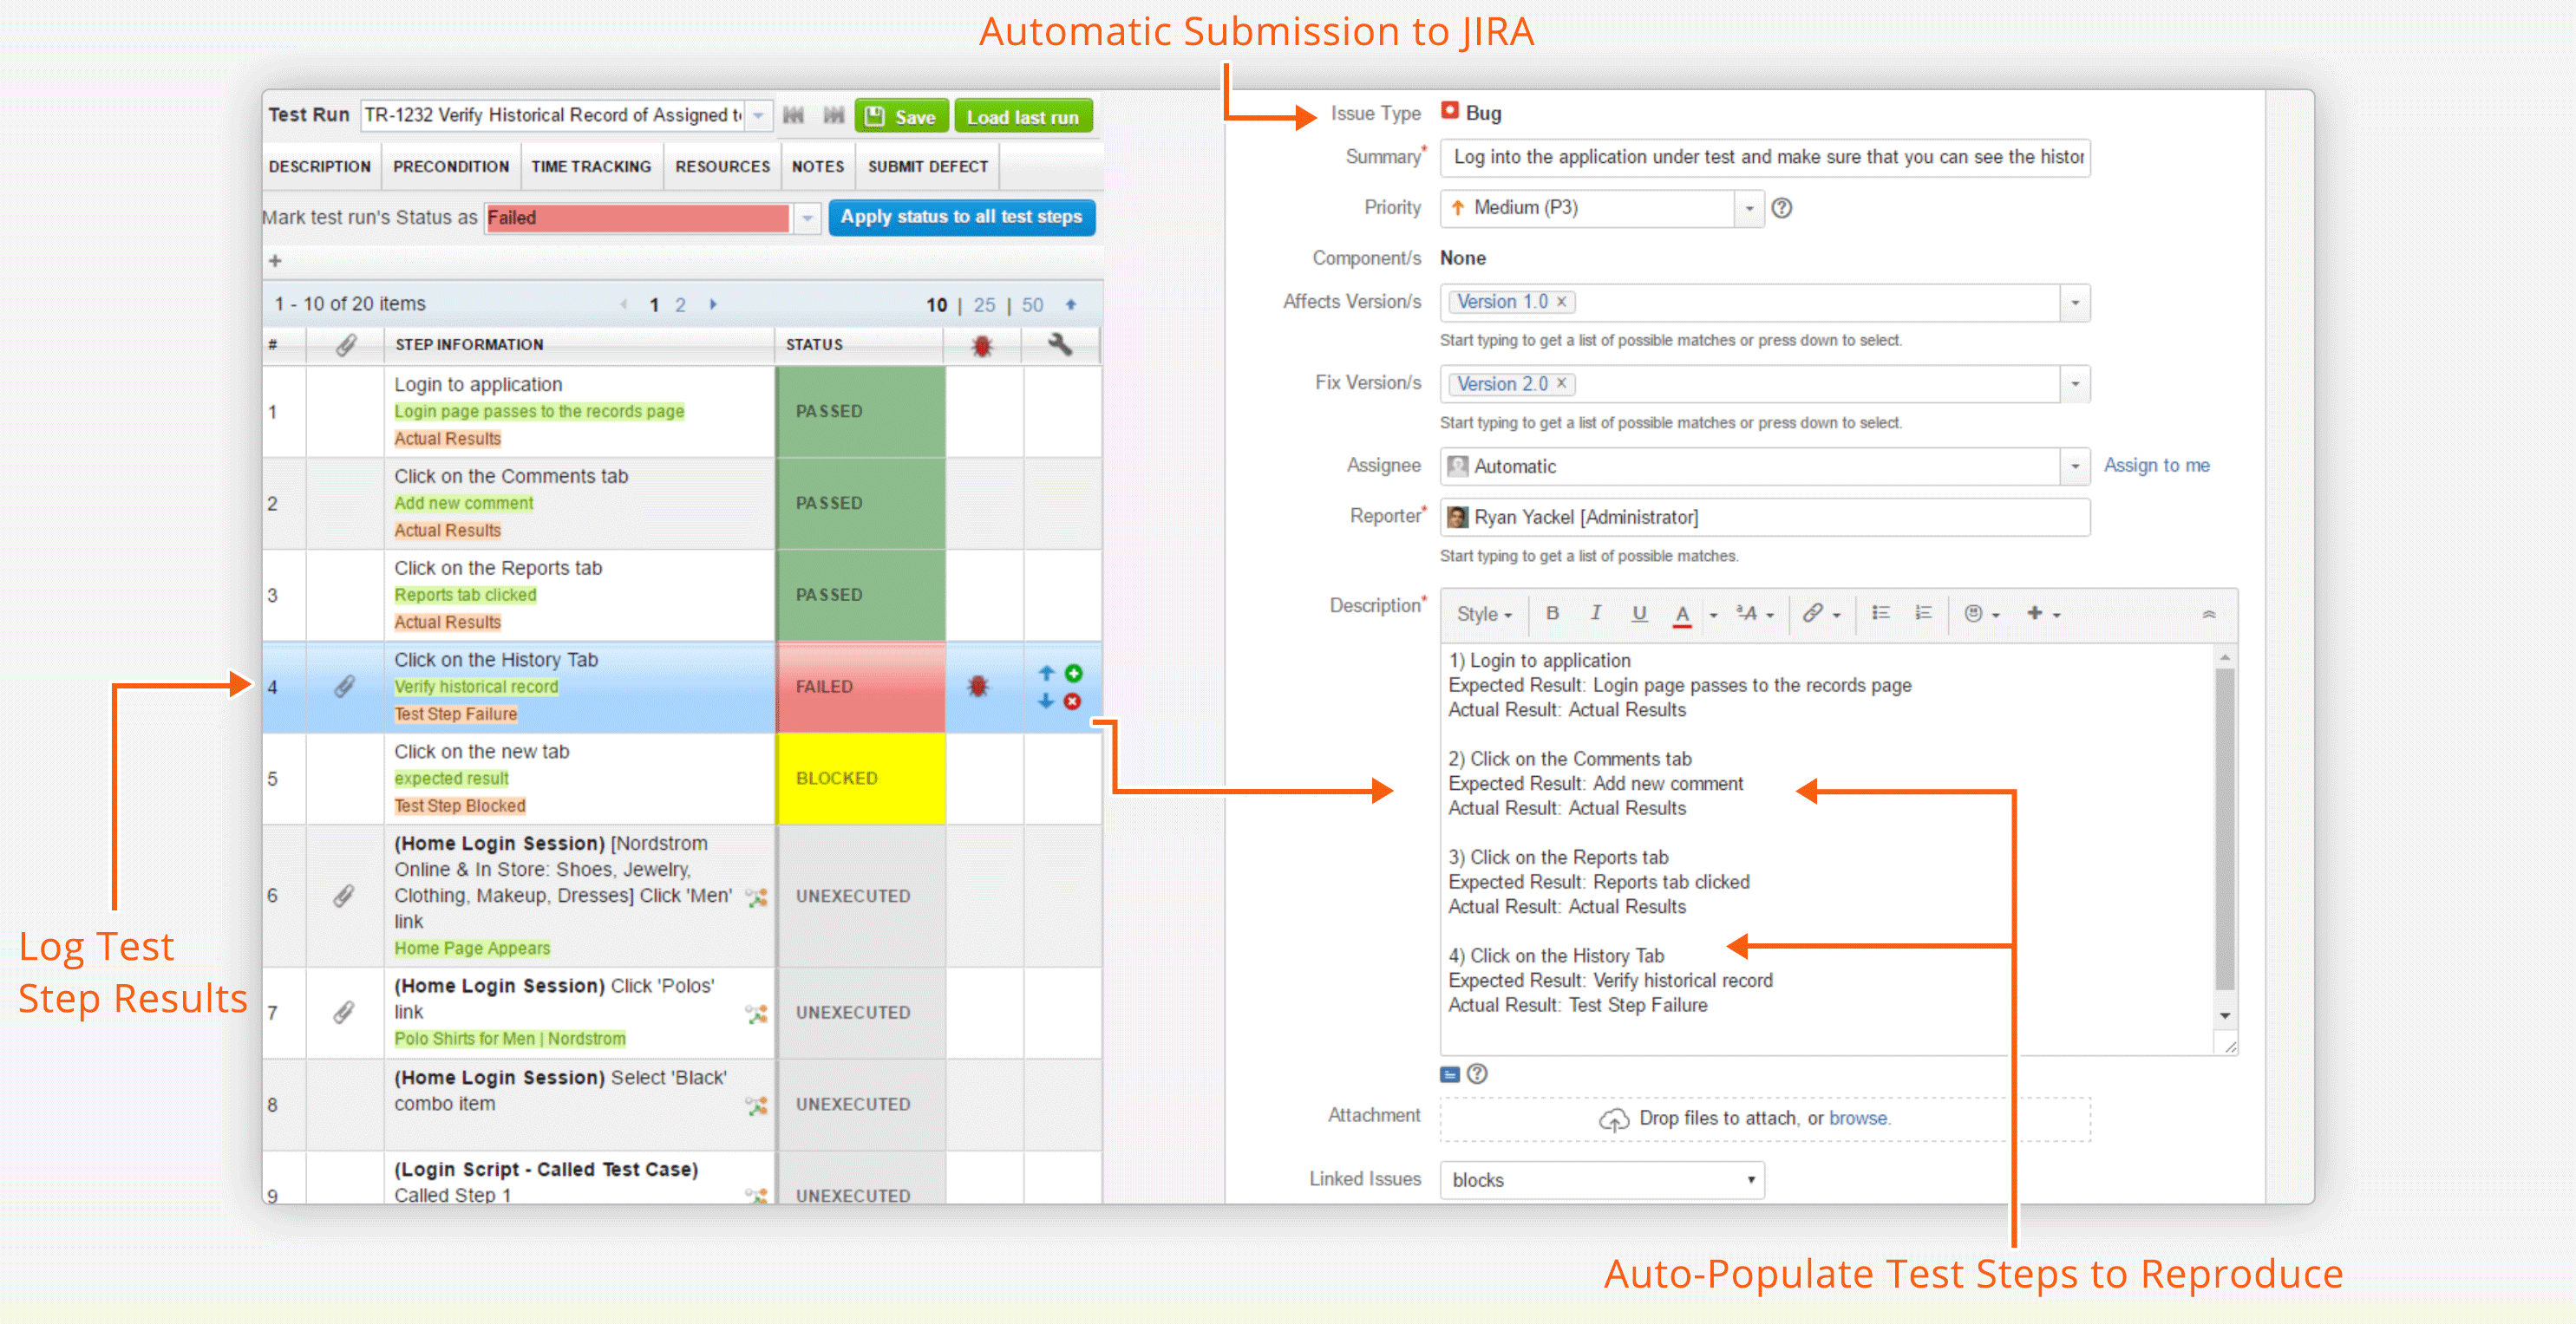 Auto-populate defect and test results into JIRA for issue tracking